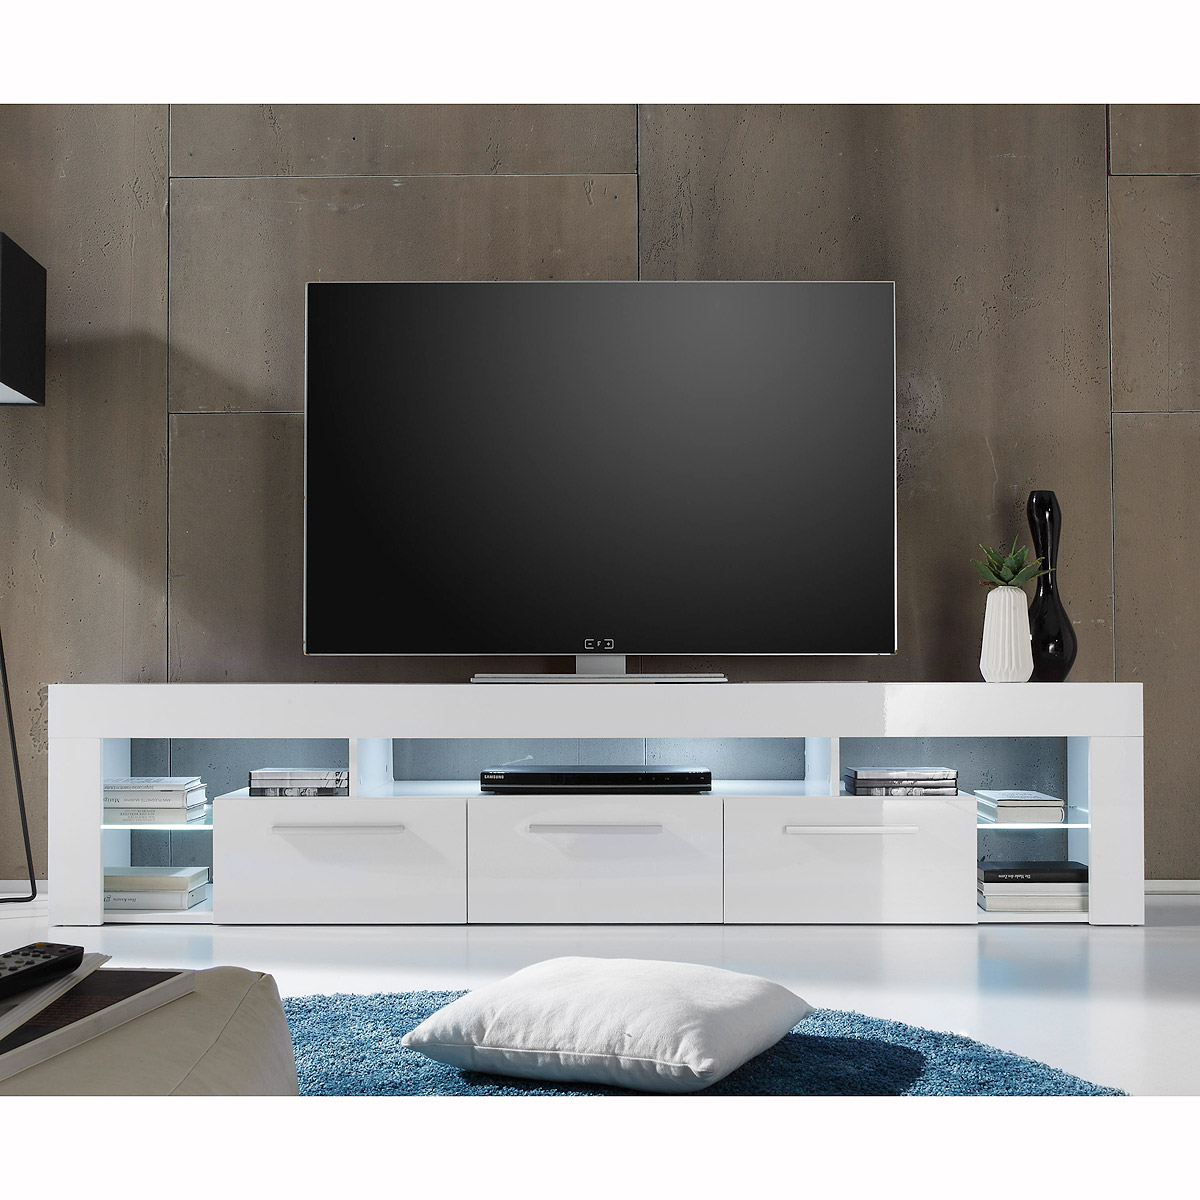 lowboard score kommode tv board in wei hochglanz breite. Black Bedroom Furniture Sets. Home Design Ideas